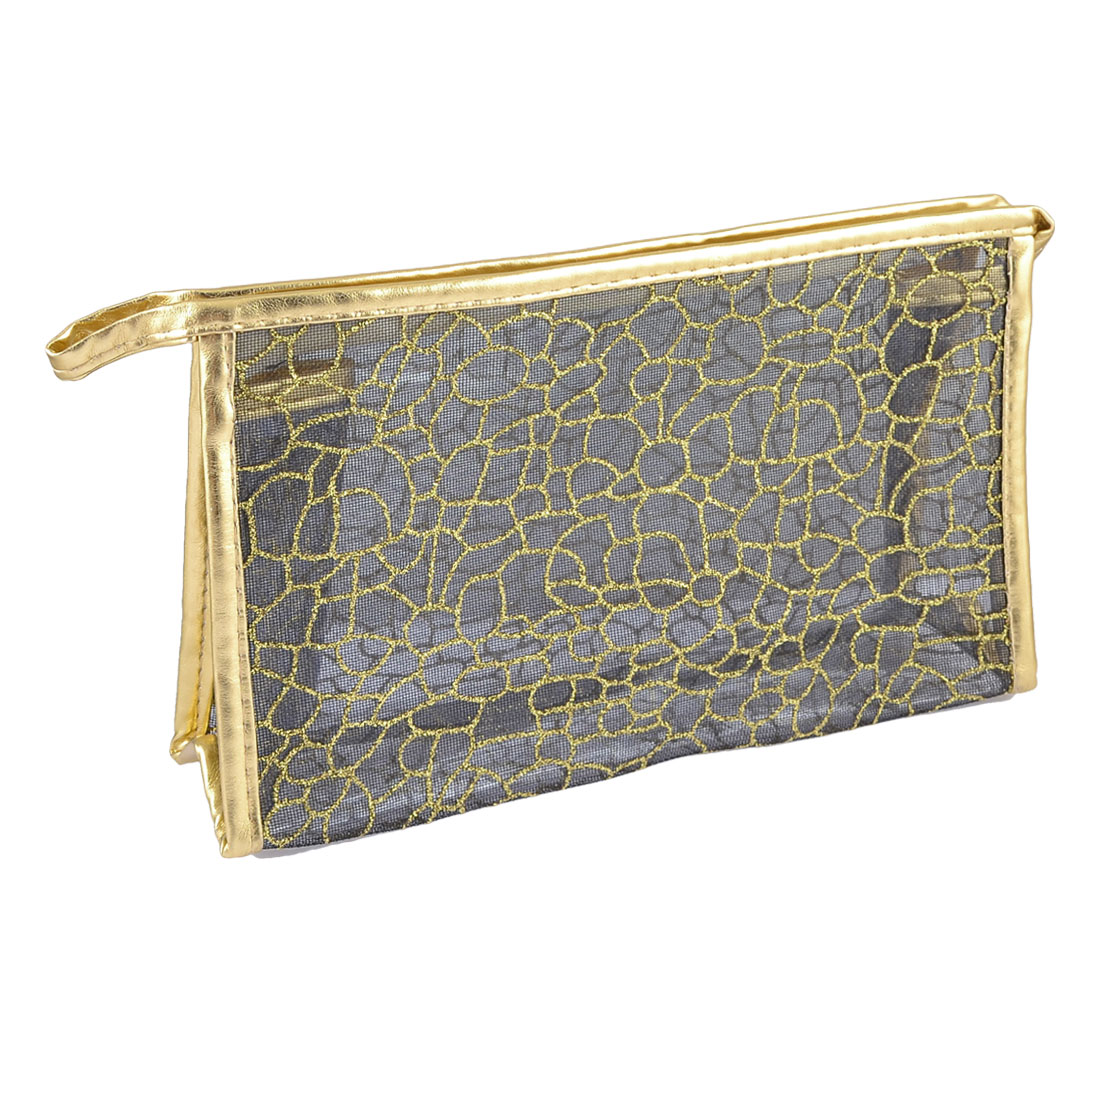 Woman Zippered Gold Tone Glittery Powder Plastic Make up Hand Bag Pouch